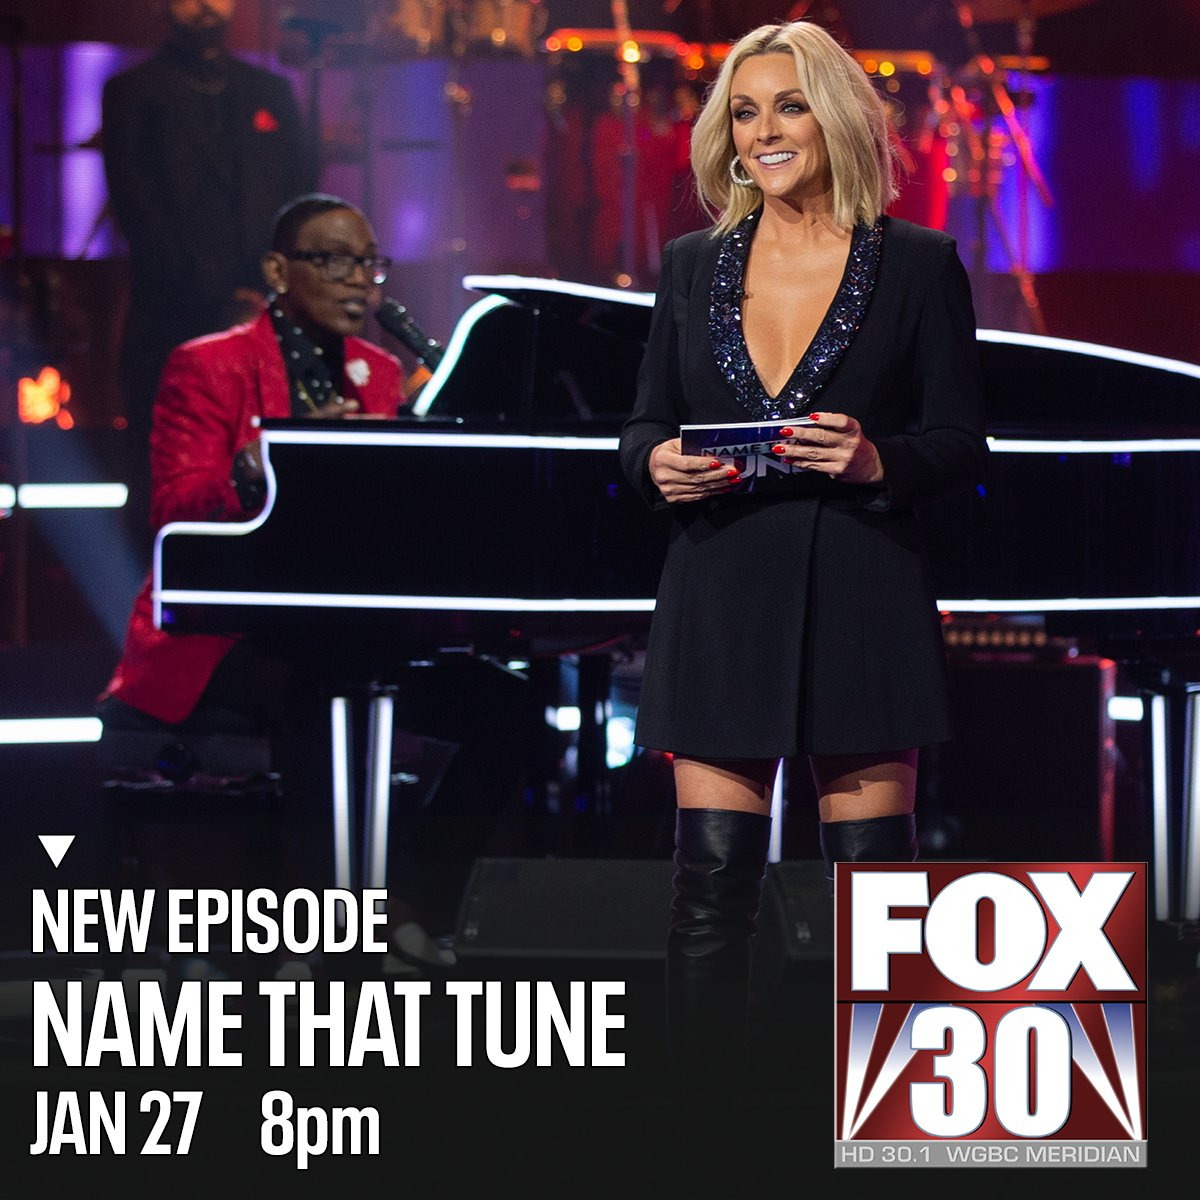 Make a note to catch Bid-A-Note on a new episode of #NameThatTune with #RandyJackson and #JaneKrakowski -- tonight at 8 on FOX30 WGBC.